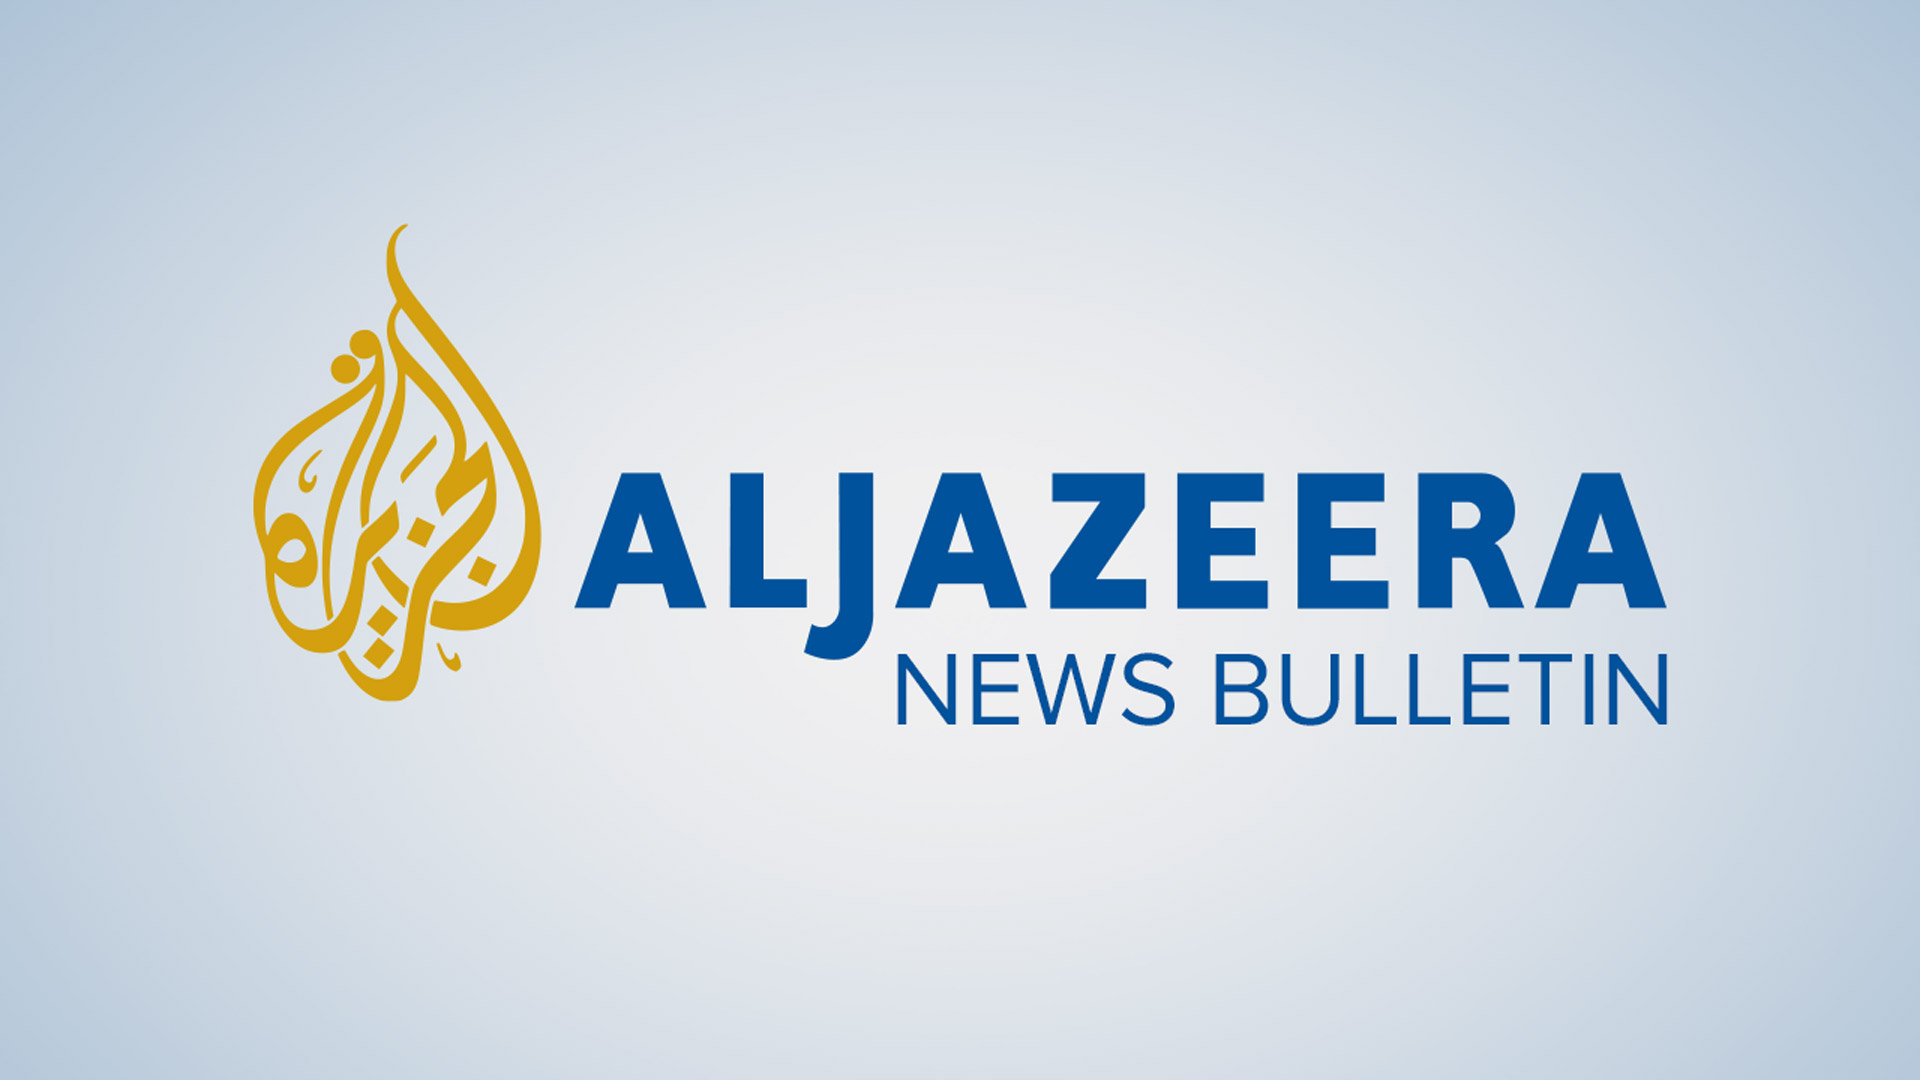 Al Jazeera English News Bulletin April 20, 2020